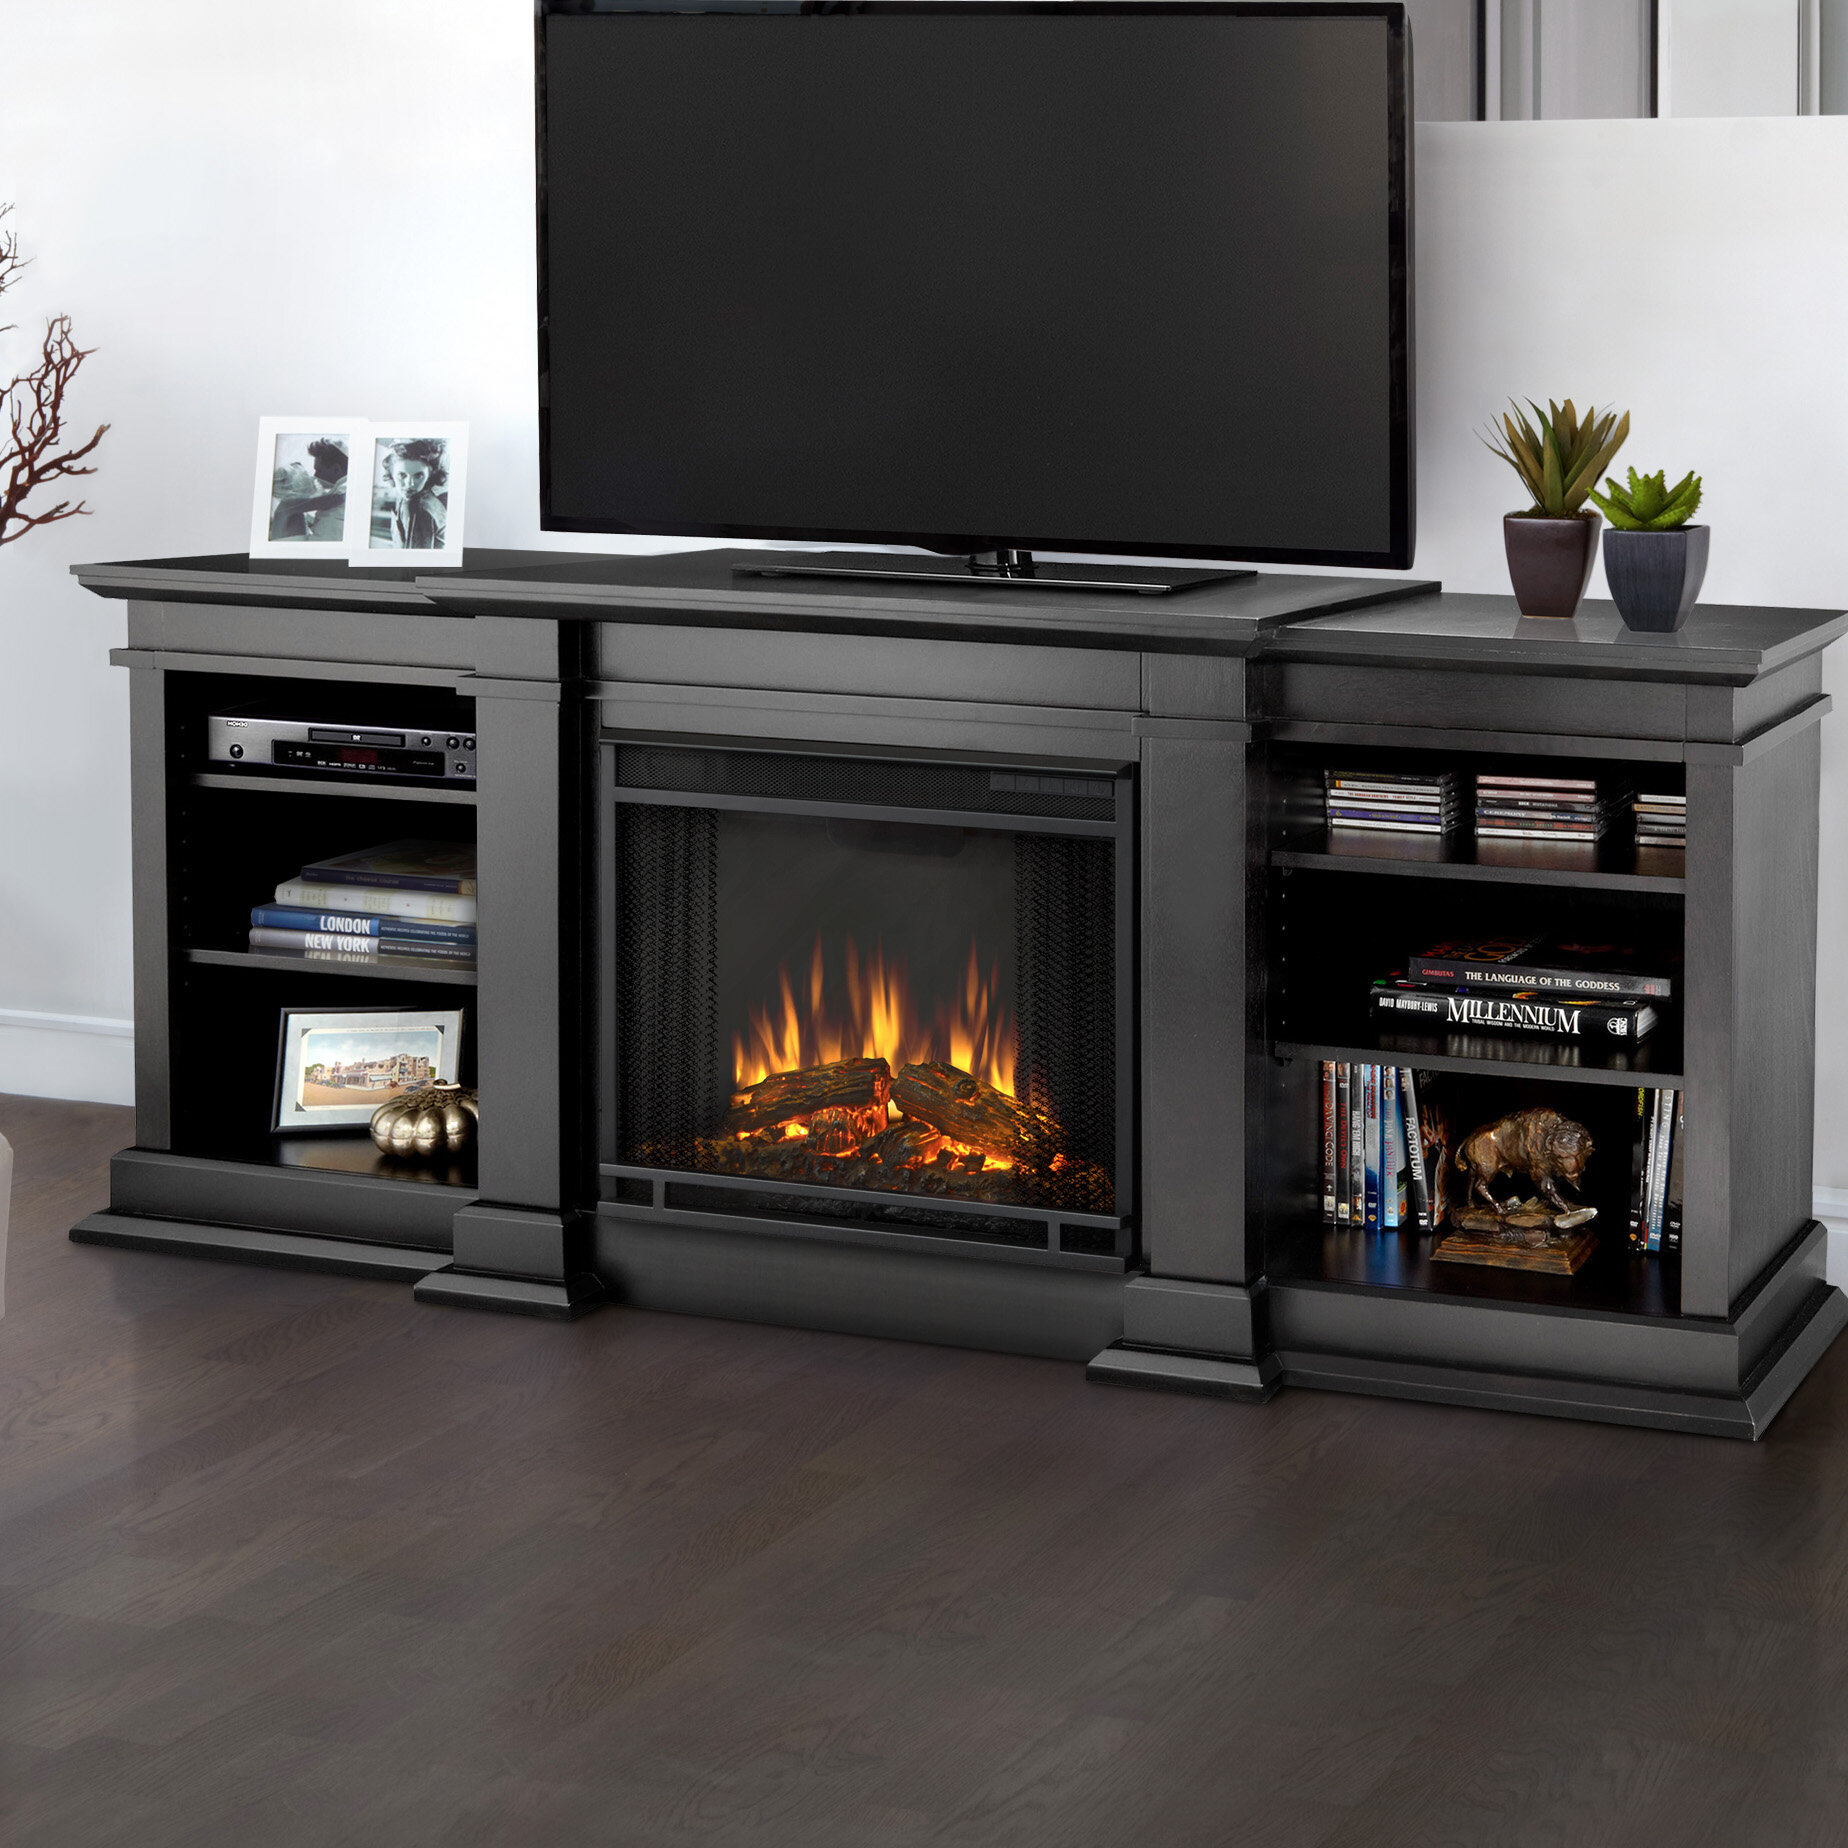 electric fireplace wall units entertainment center elegant fresno entertainment center for tvs up to 70quot with electric fireplace of electric fireplace wall units entertainment center